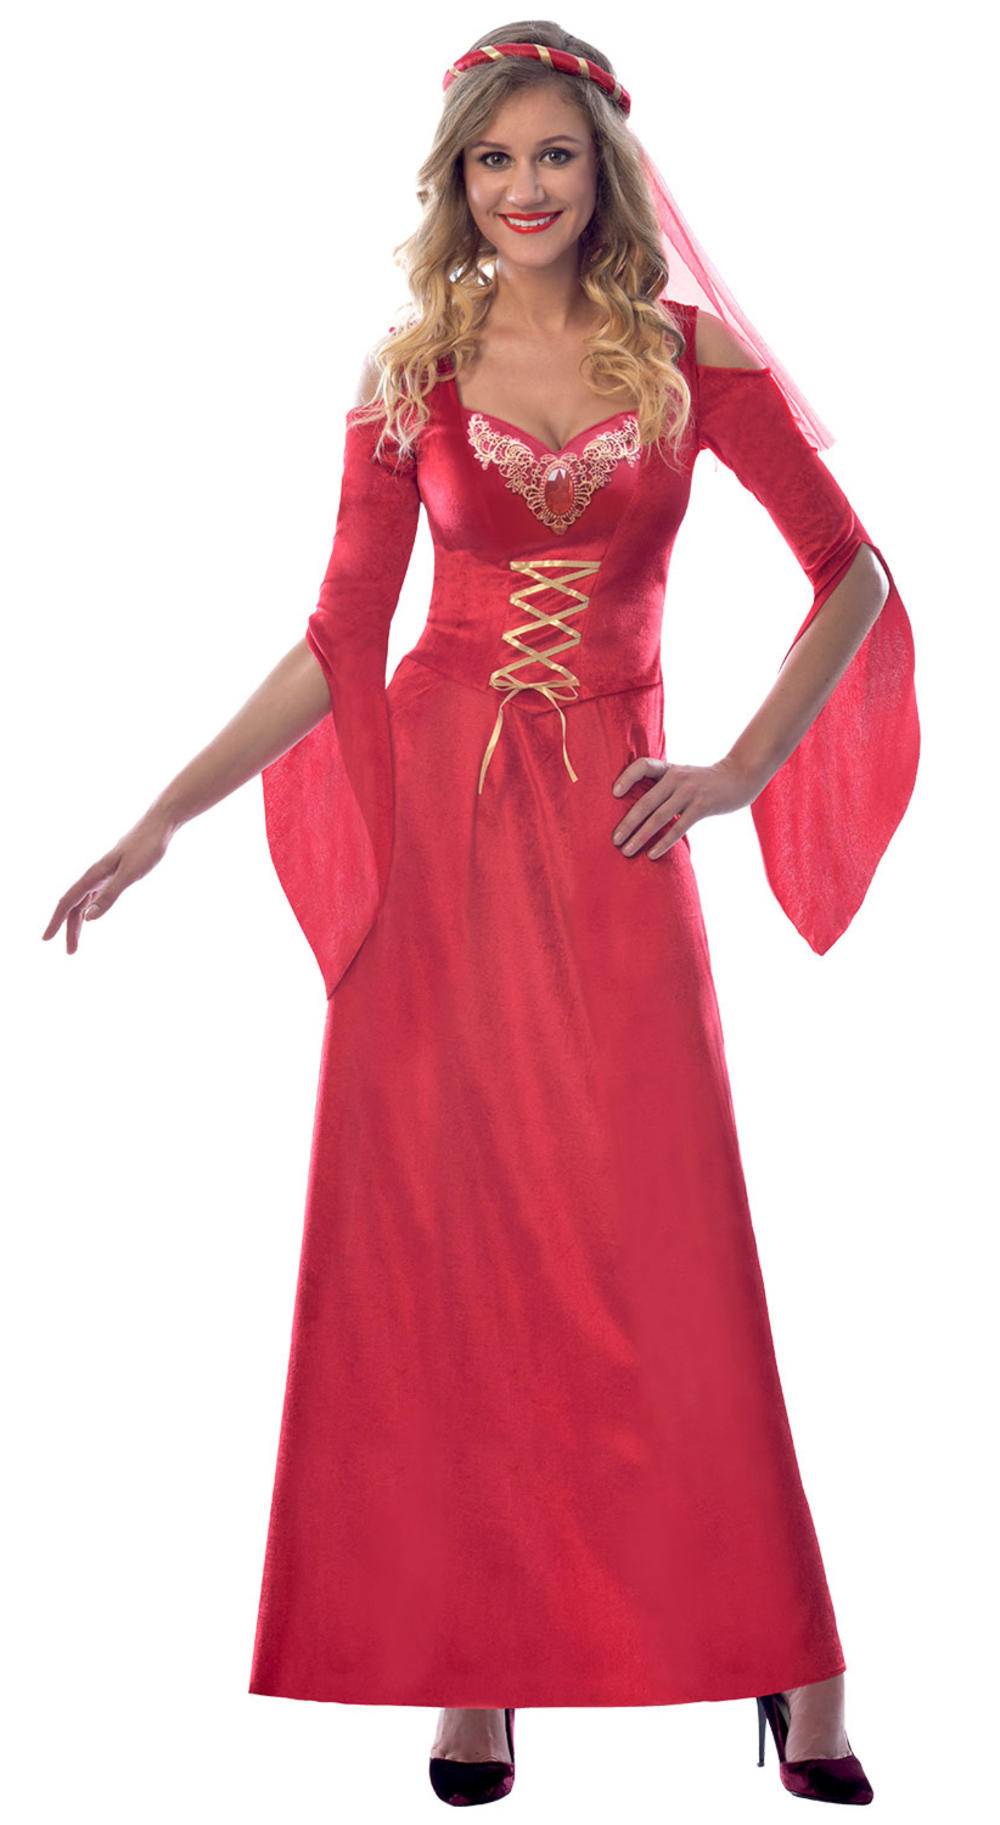 Medieval Maiden Ladies Costume